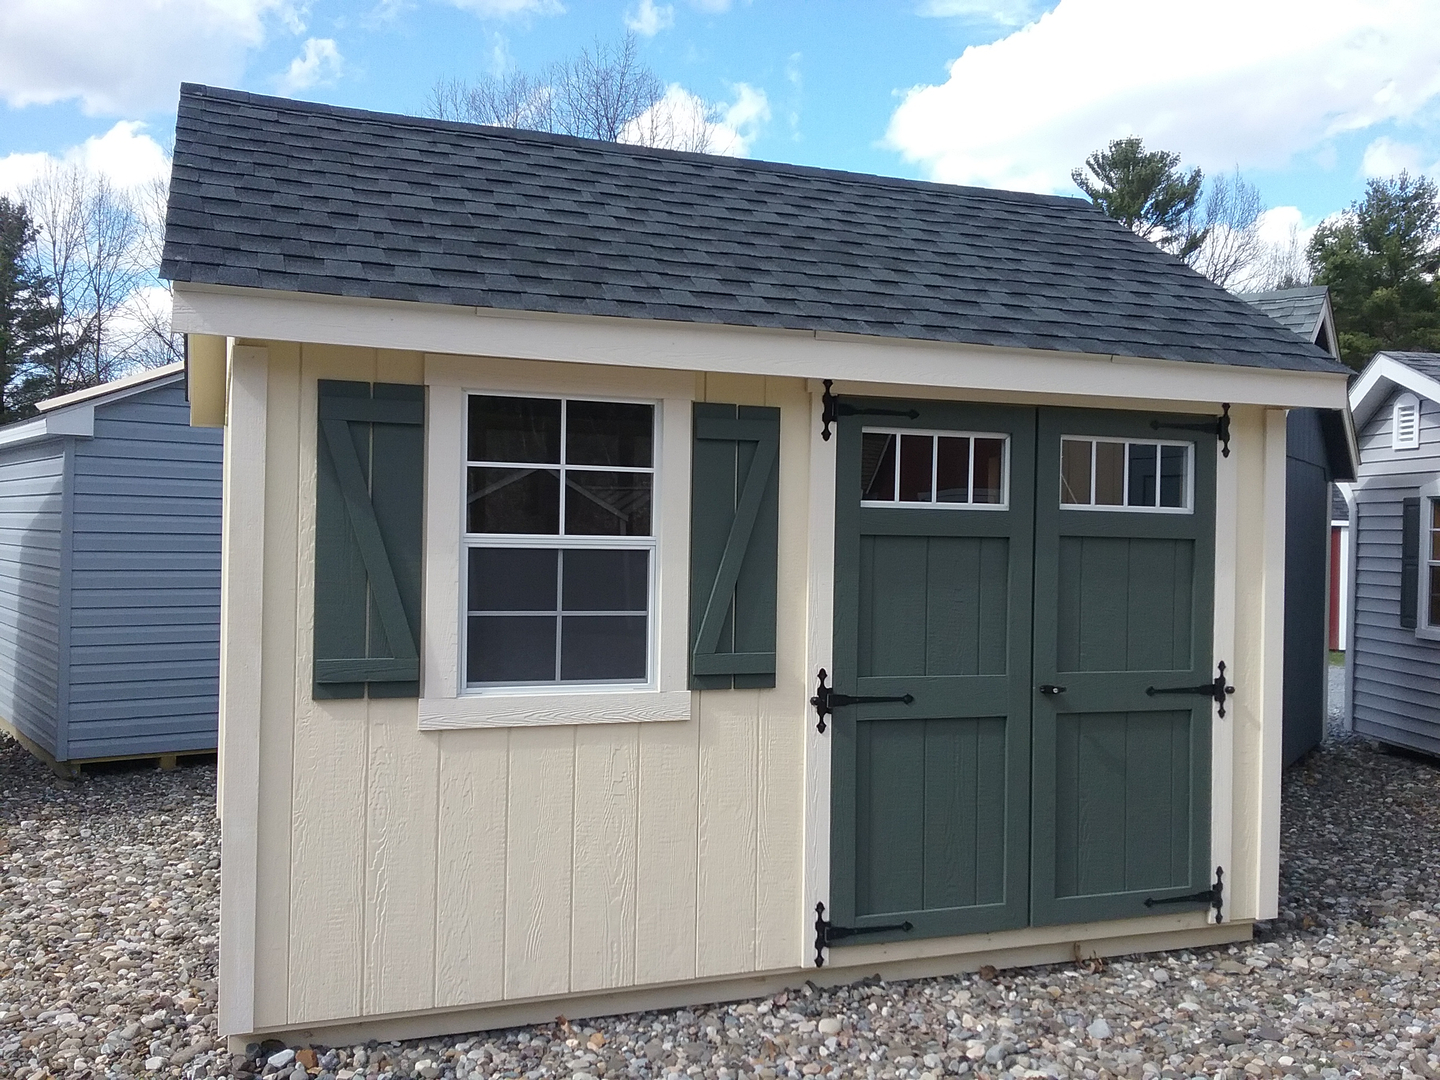 Deluxe with dormer transom windows and cupola - Shed 306